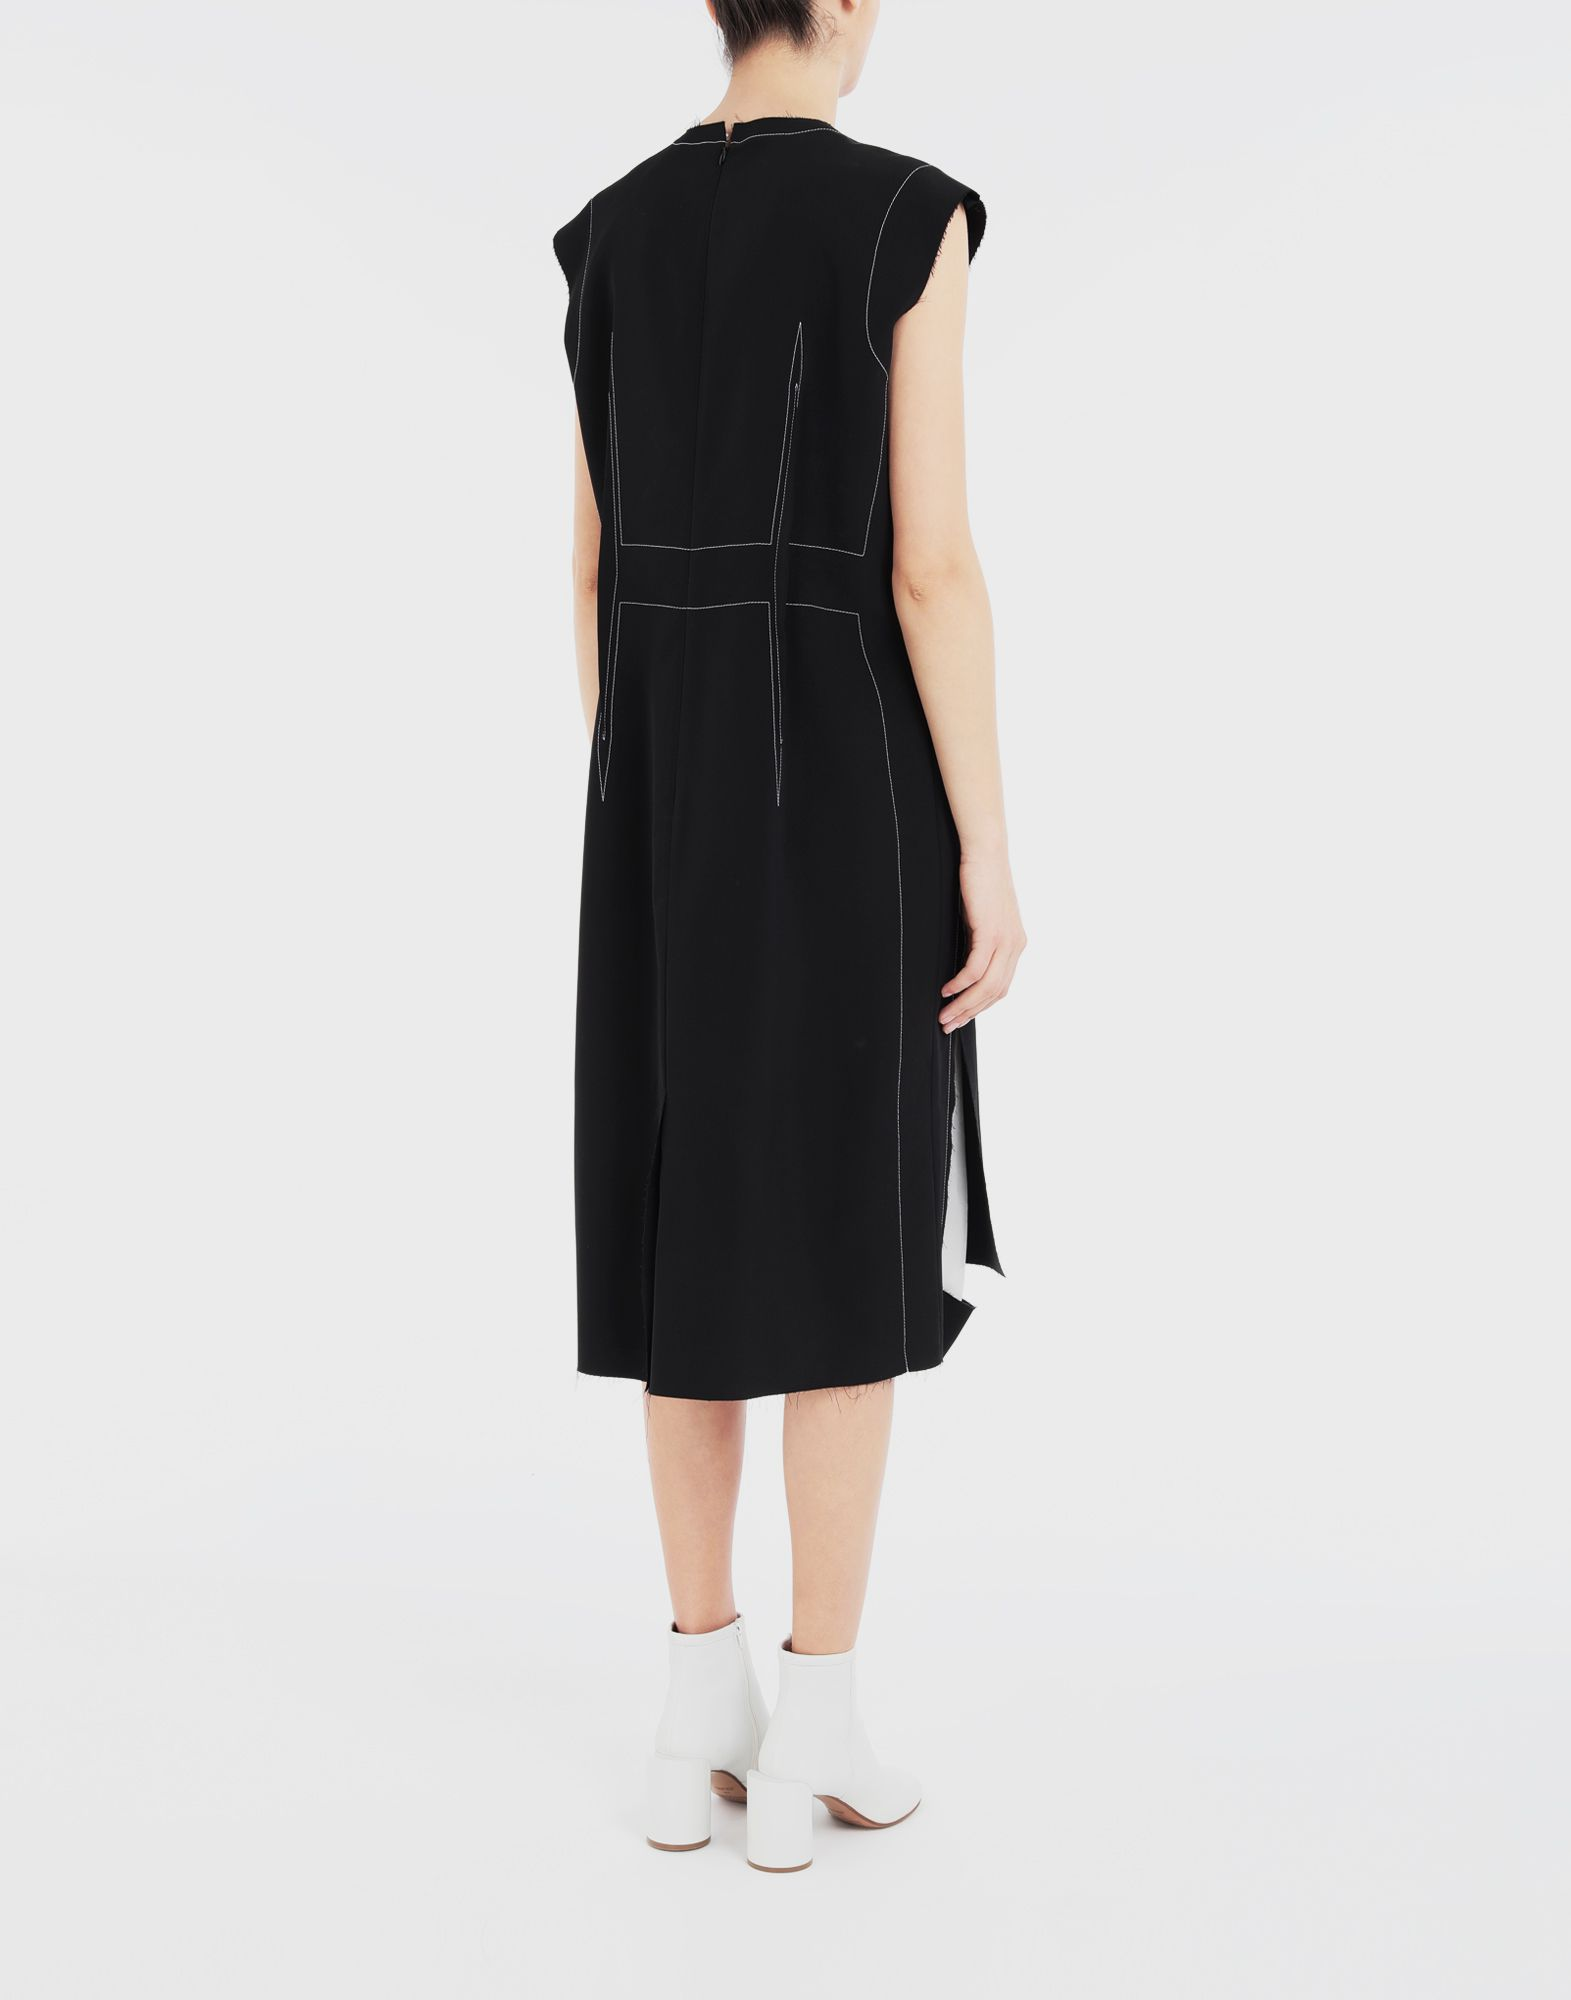 MAISON MARGIELA Décortiqué embroidered dress 3/4 length dress Woman e